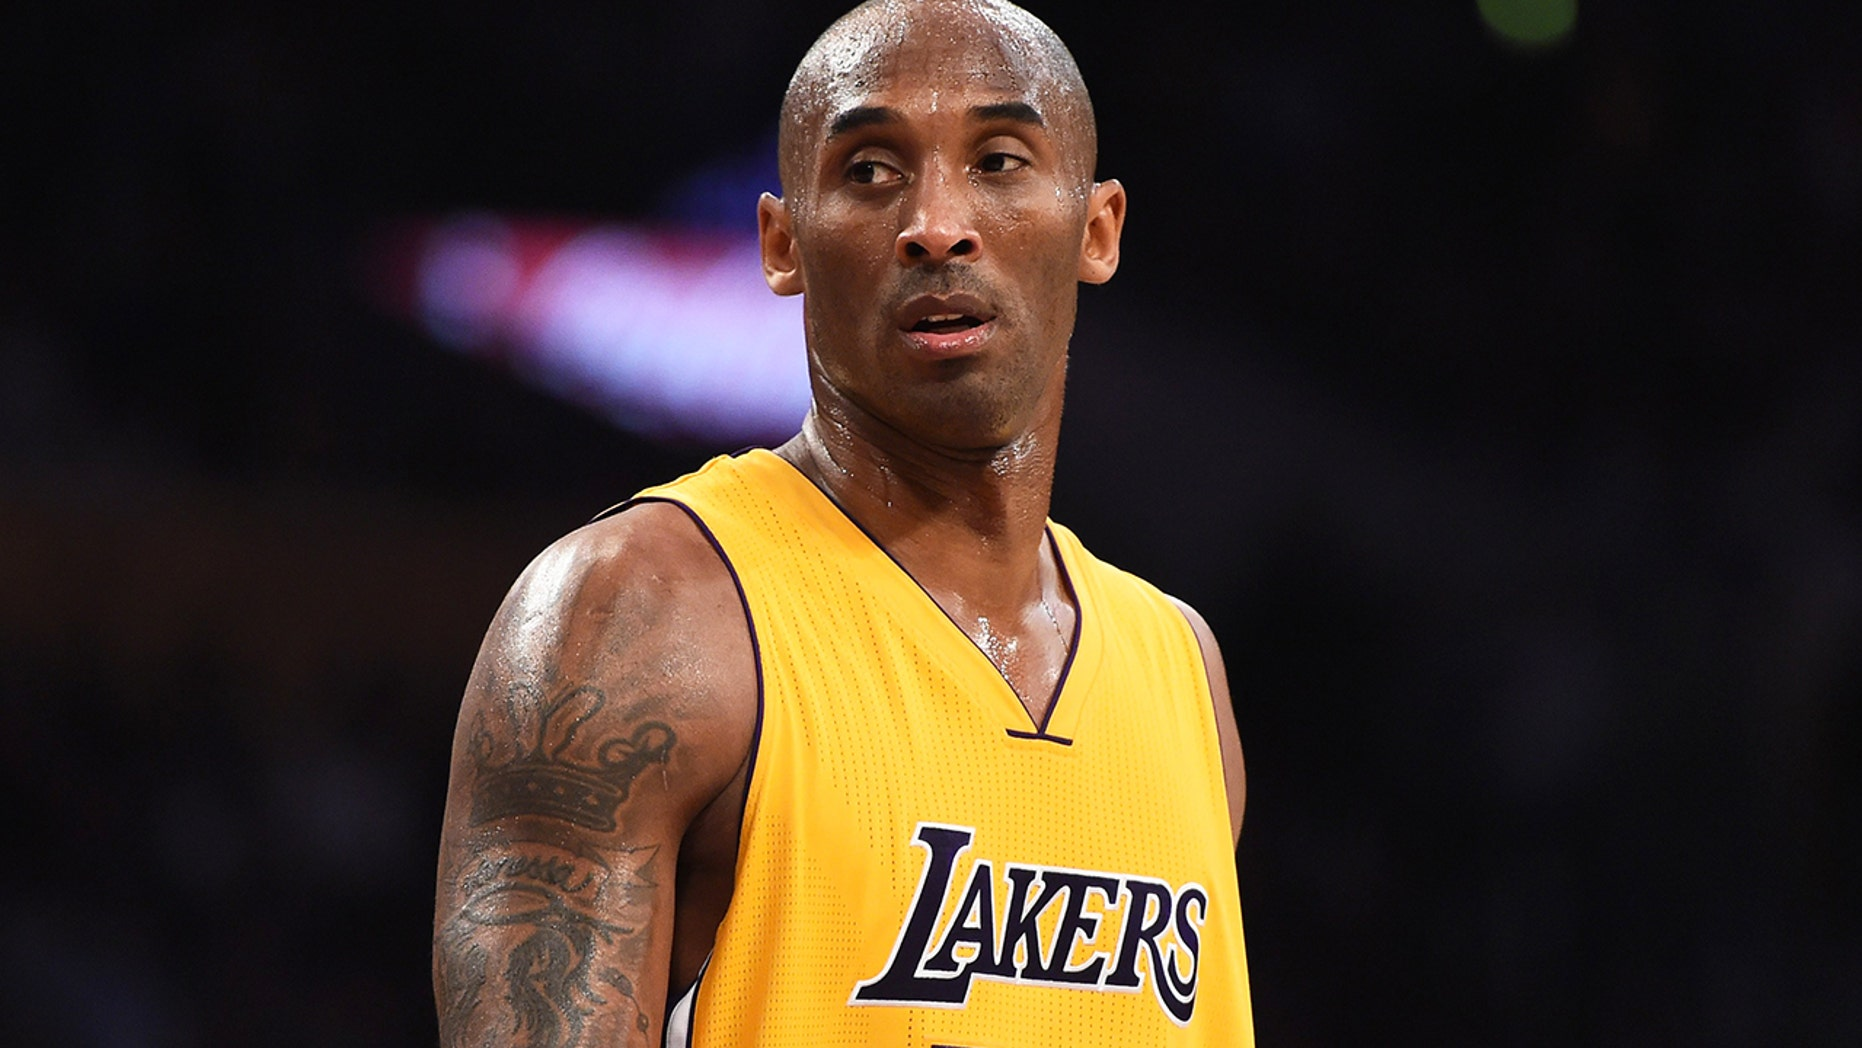 FILE: Kobe Bryant (24) of the Los Angeles Lakers looks on during the Lakers NBA match up with the Toronto Raptors, November 20, 2015 at Staples Center in Los Angeles, California. The Raptors defeated the Lakers 102-91.